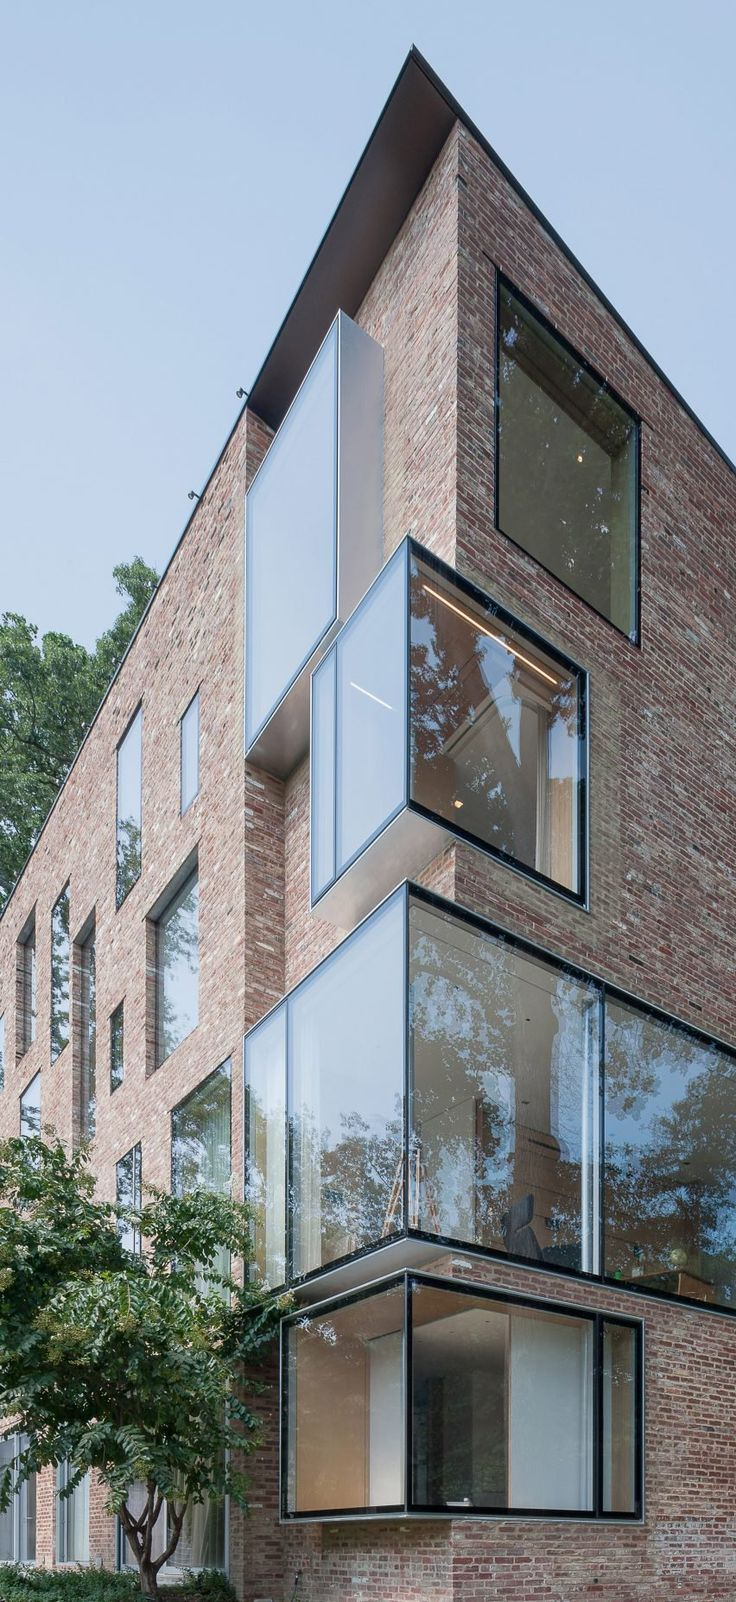 Nadaaa overhauls brick house in washington dc with ample glazing and a plywood interior swimming photographyplywood interiorarch architecturebeautiful